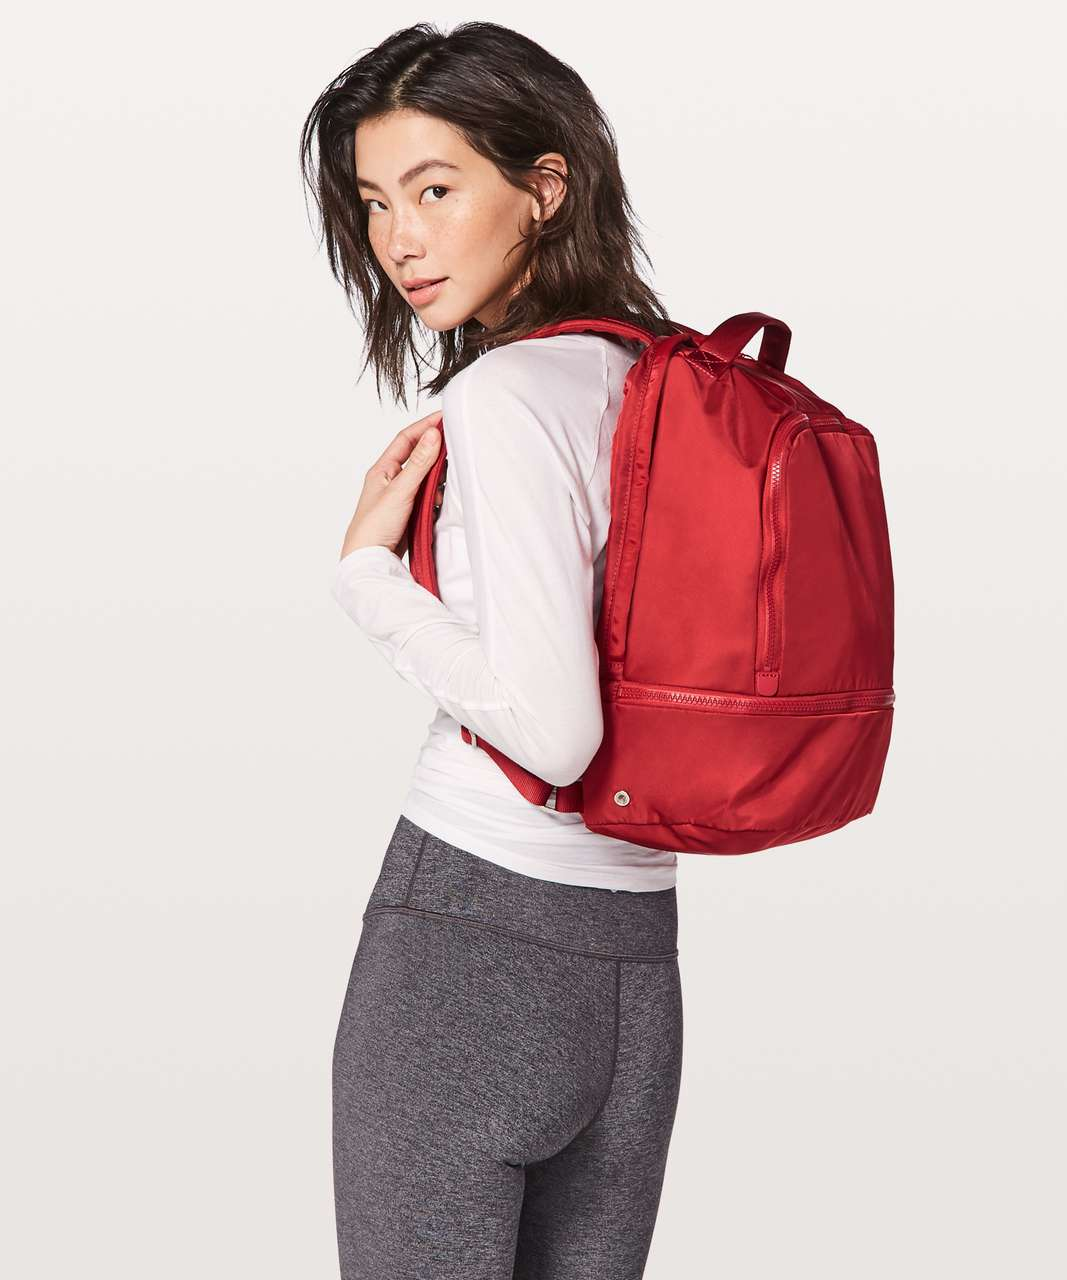 Lululemon City Adventurer Backpack *17L - Persian Red